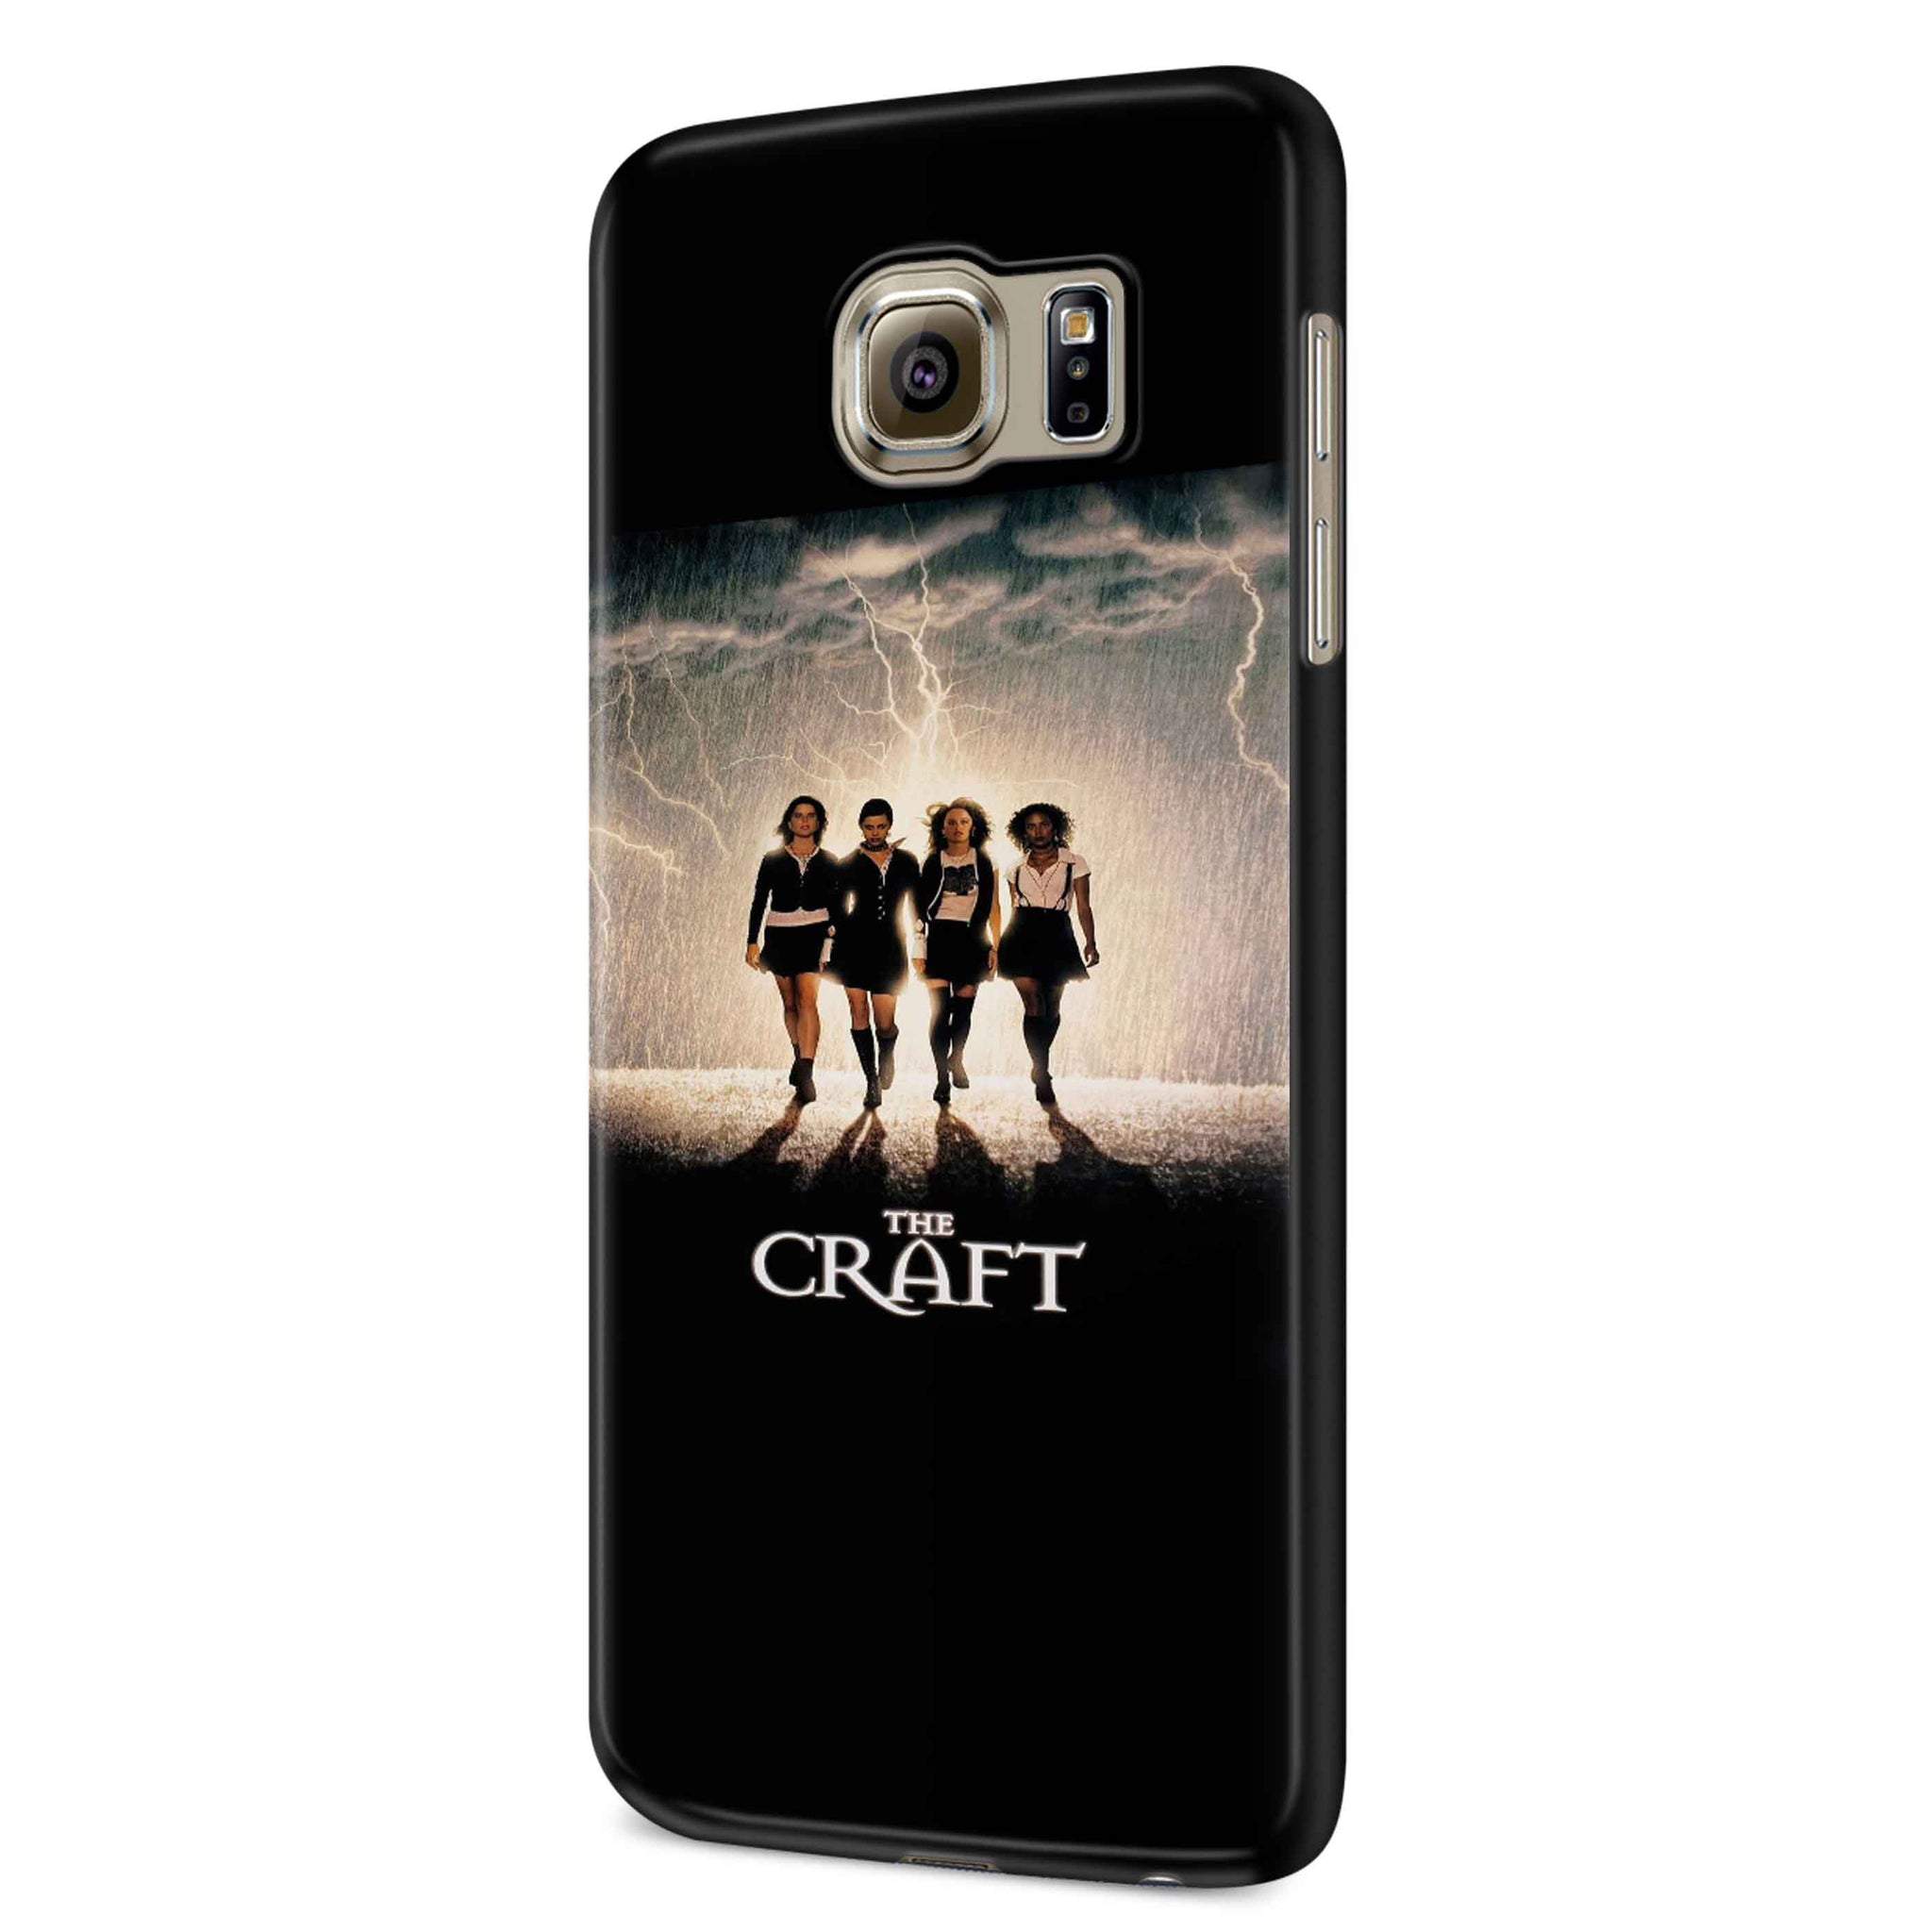 The Craft Movie Samsung Galaxy S6 S6 Edge Plus/ S7 S7 Edge / S8 S8 Plus / S9 S9 plus 3D Case